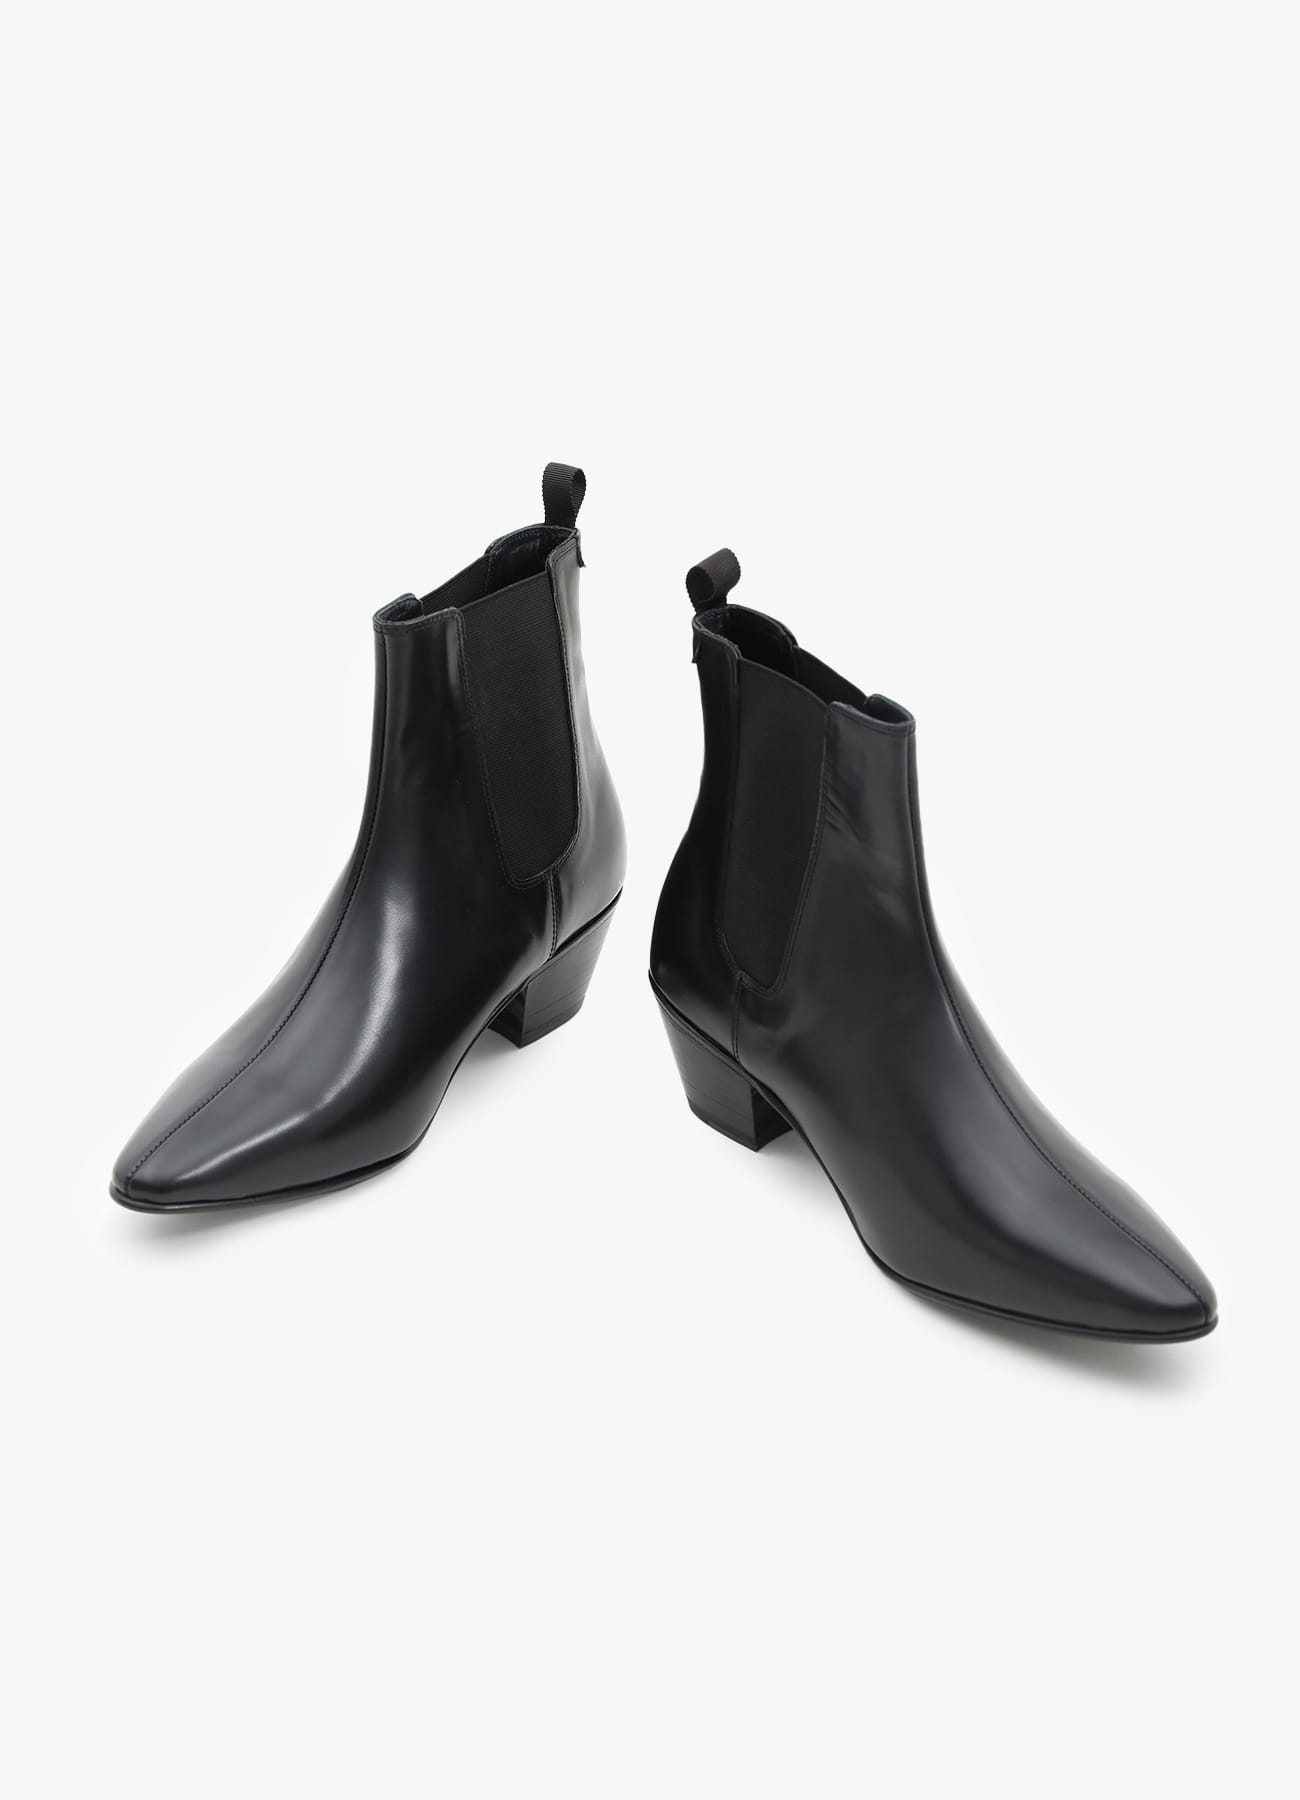 ADDOFF x BANANAFIT Collab.06 Ankle Boots - Black